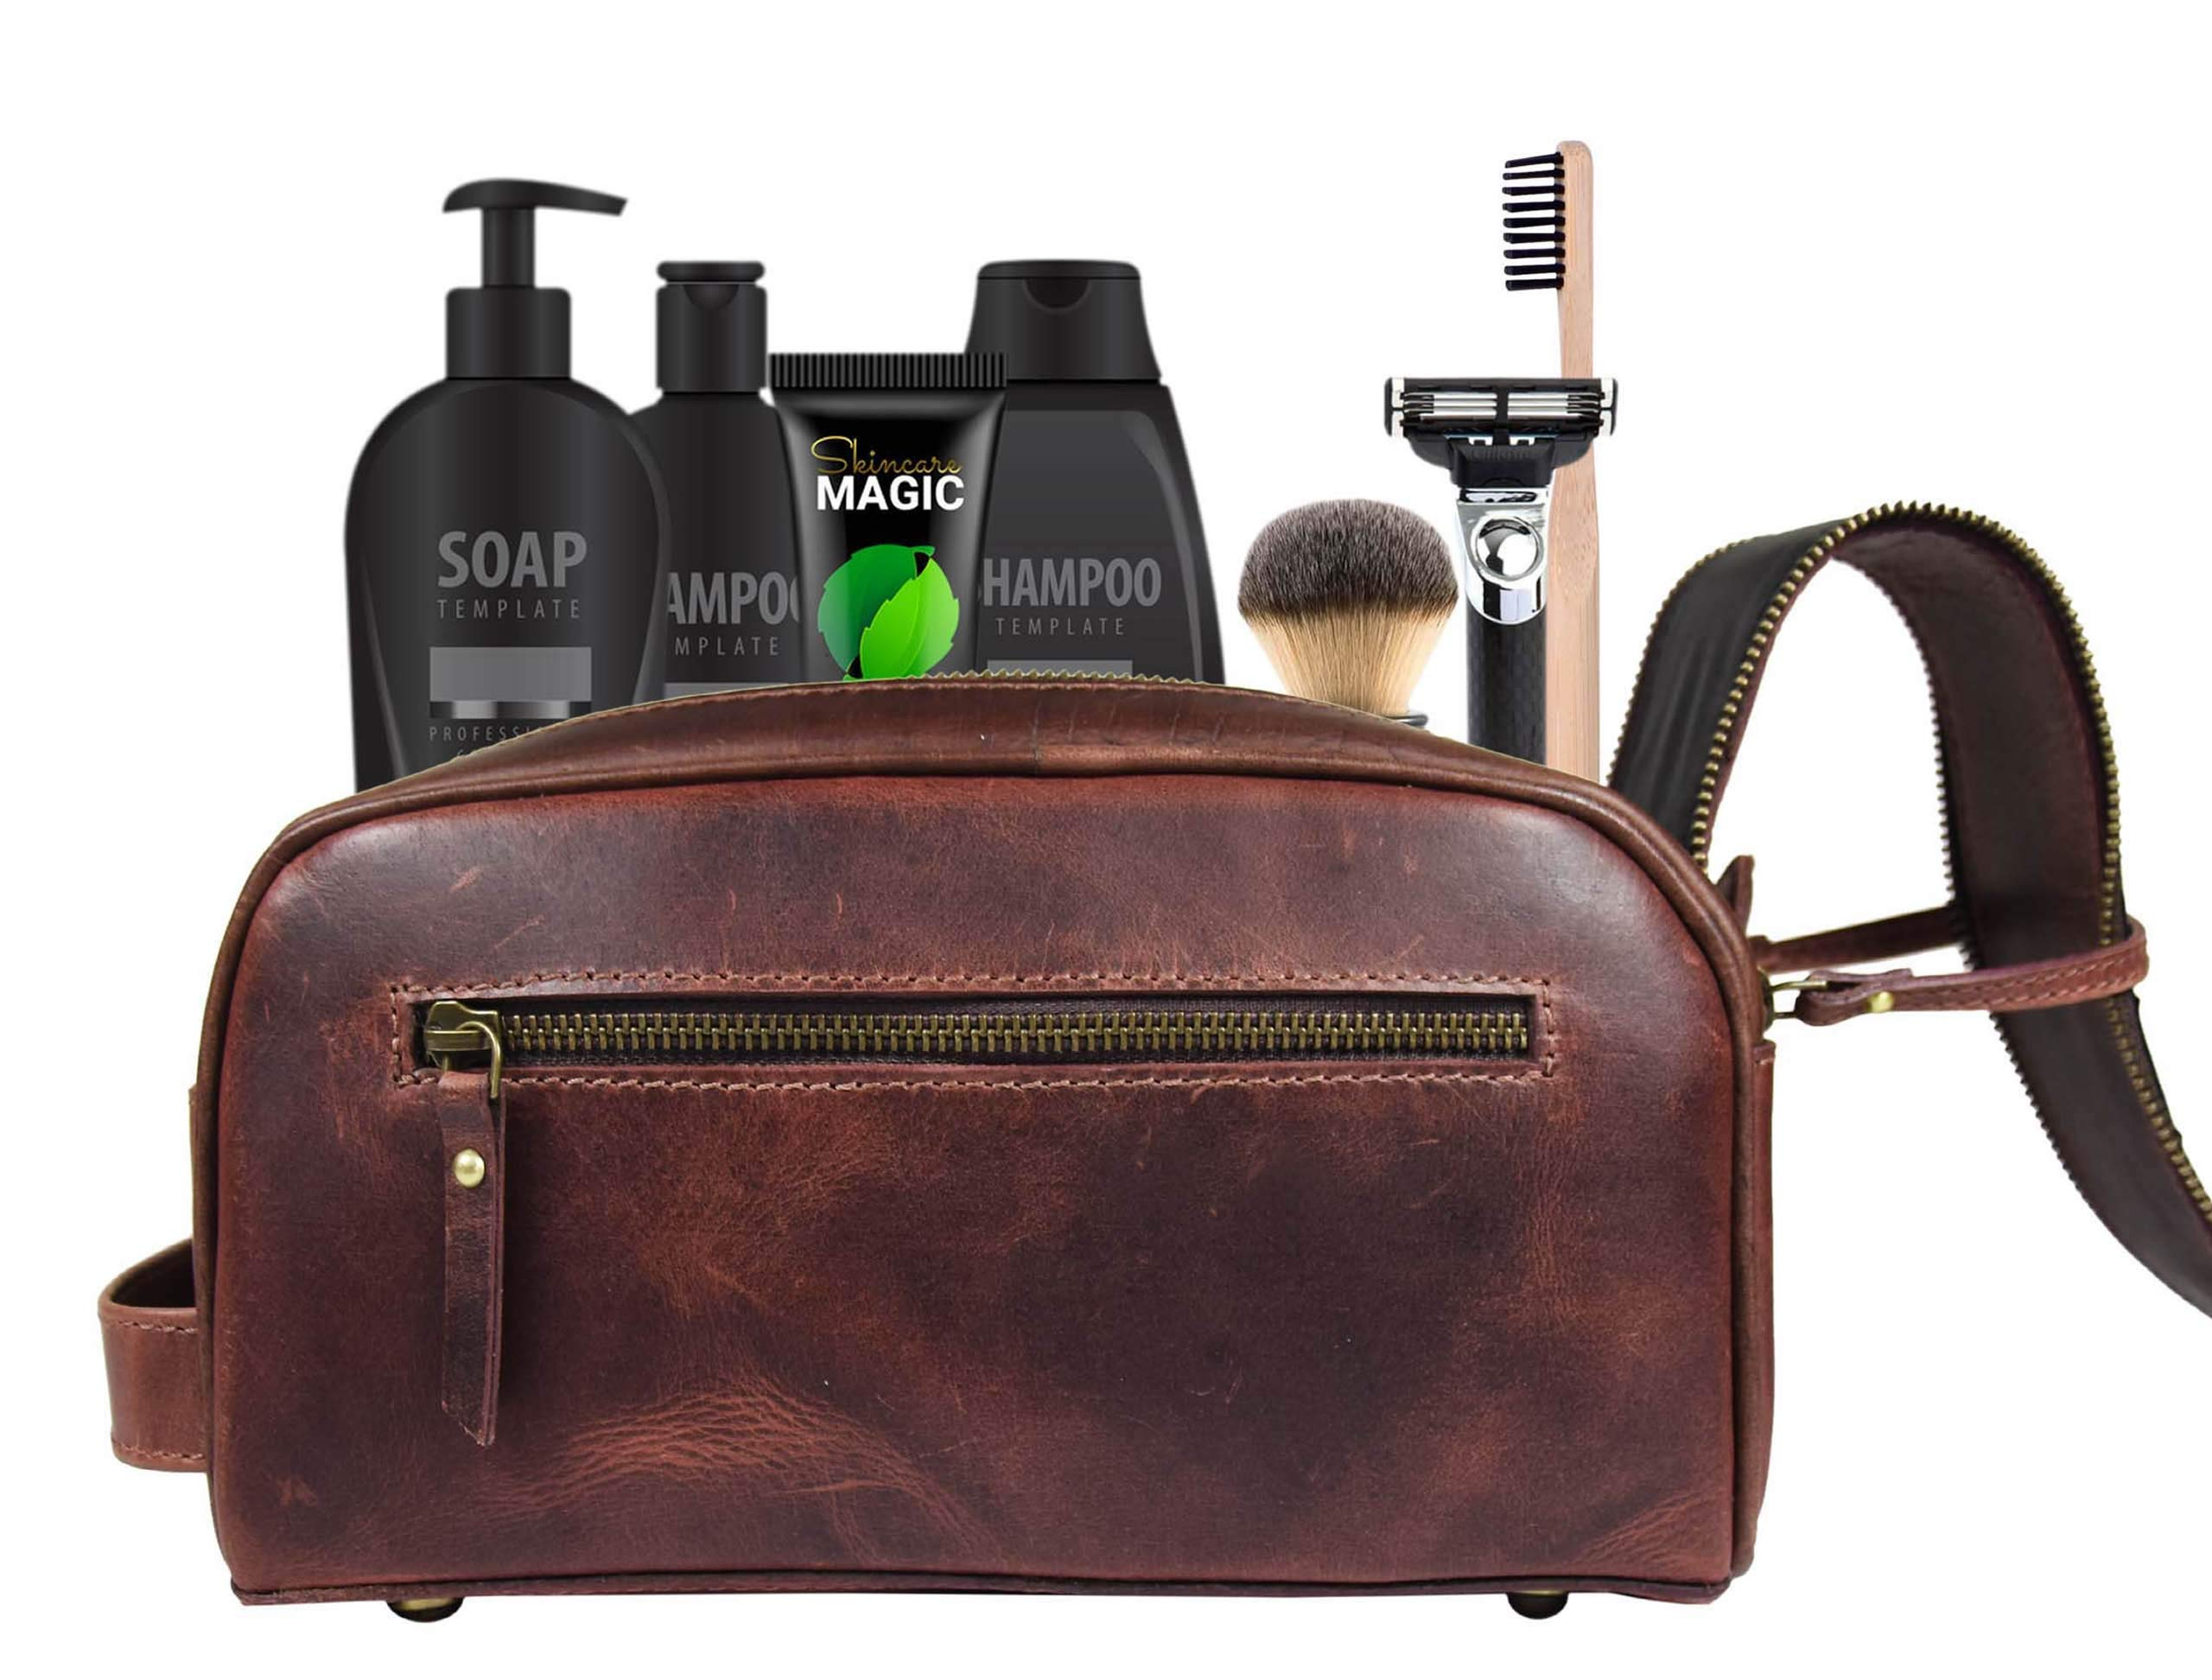 Leather Toiletry Bag for Men | Grooming Travel Kit | By Aaron Leather (Walnut - Dual Zipper) by AARON LEATHER GOODS VENDIMIA ESTILO (Image #5)